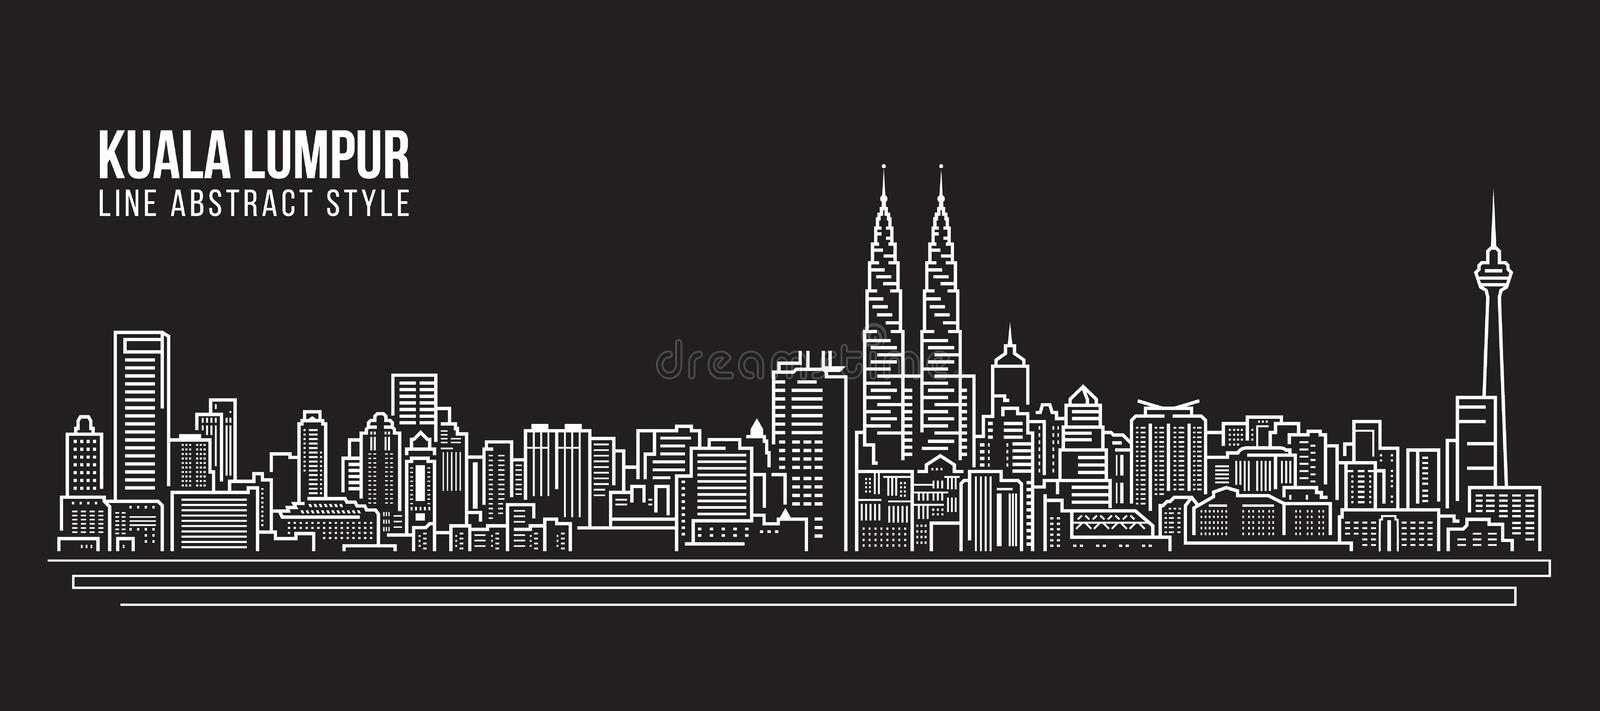 Alignement de paysage urbain conception d'illustration de vecteur d'art - horizon de Kuala Lumpur illustration libre de droits